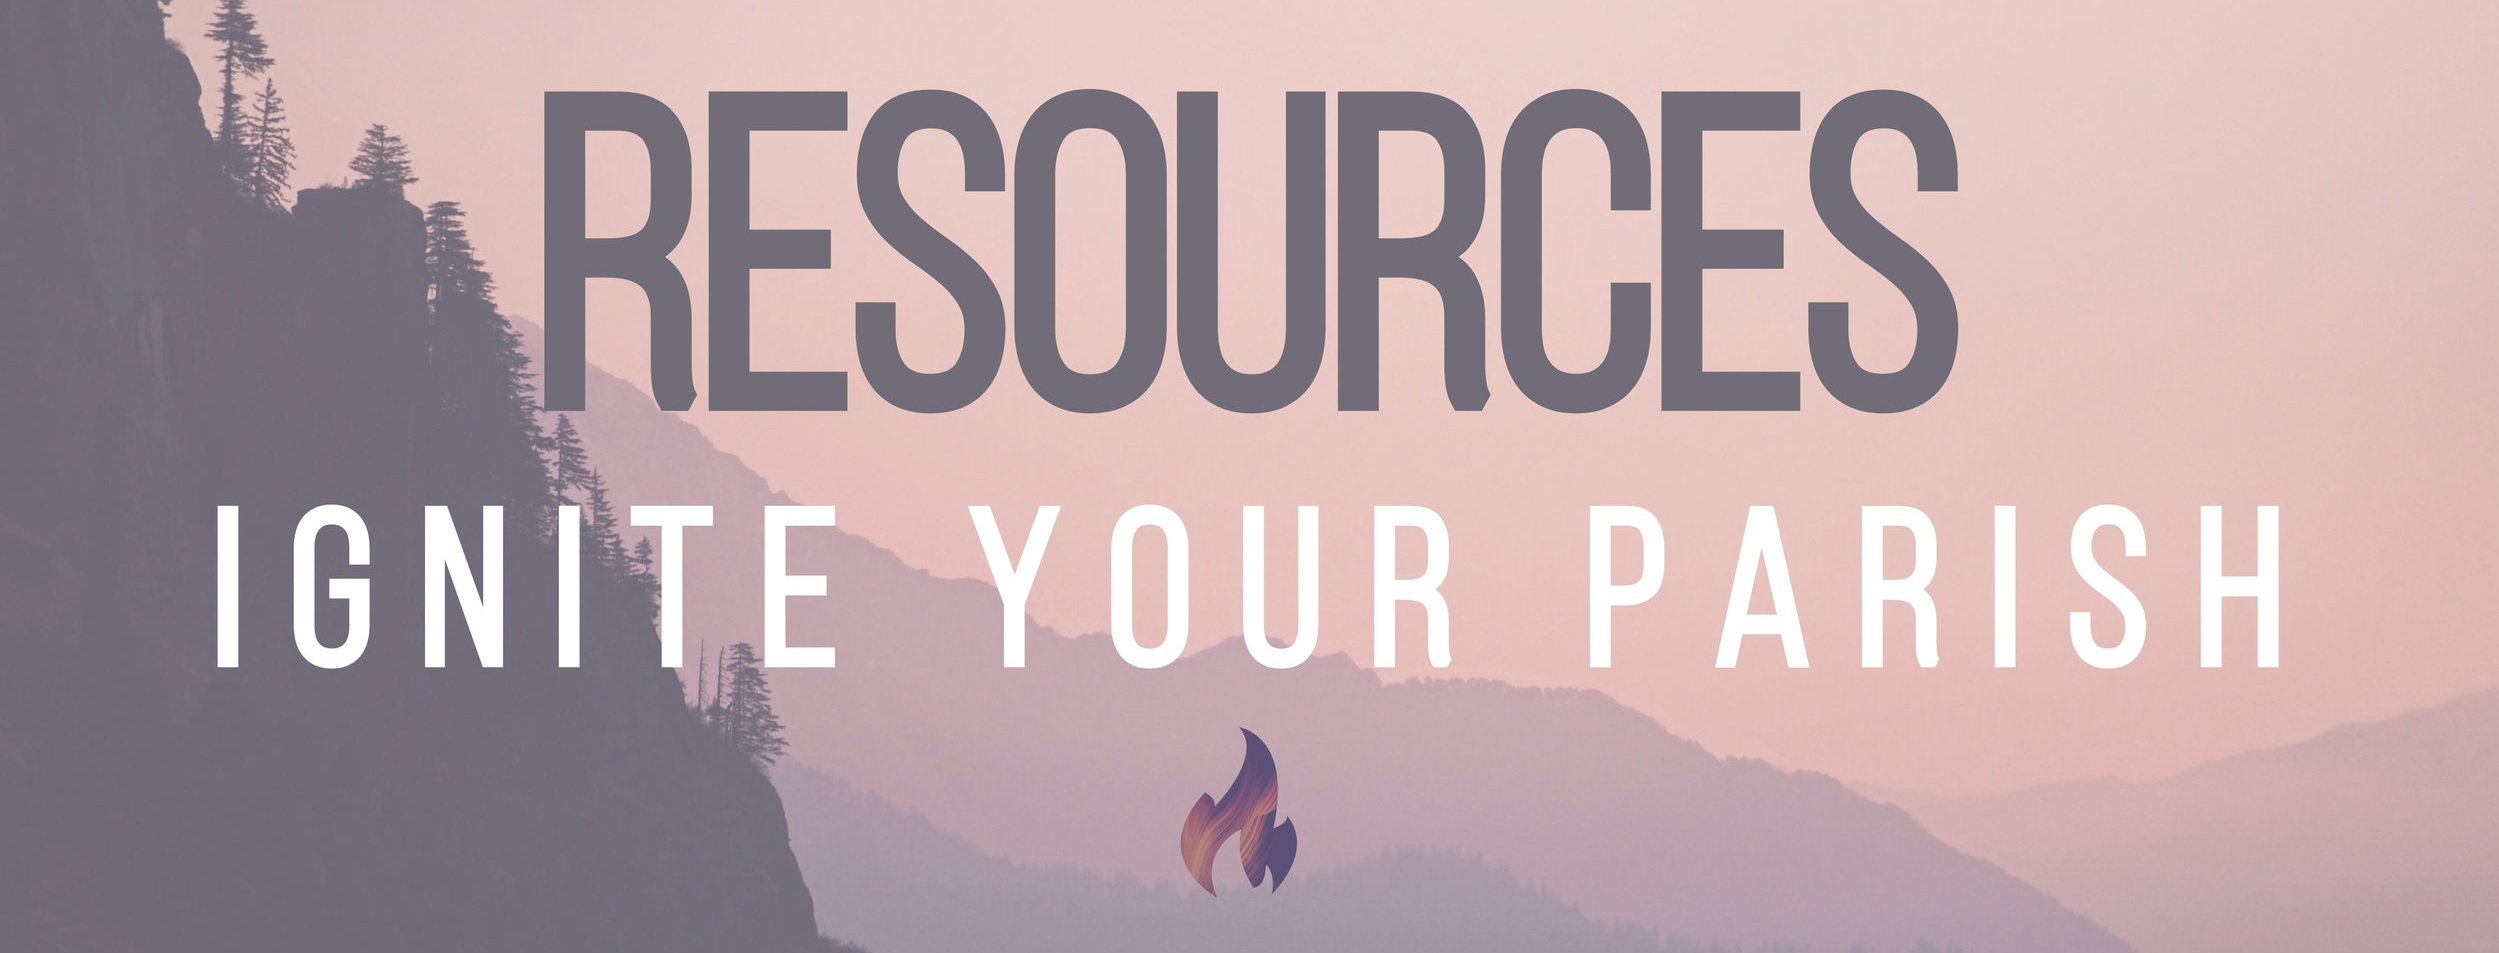 RESOURCES+Ignite+Your+Parish.jpg